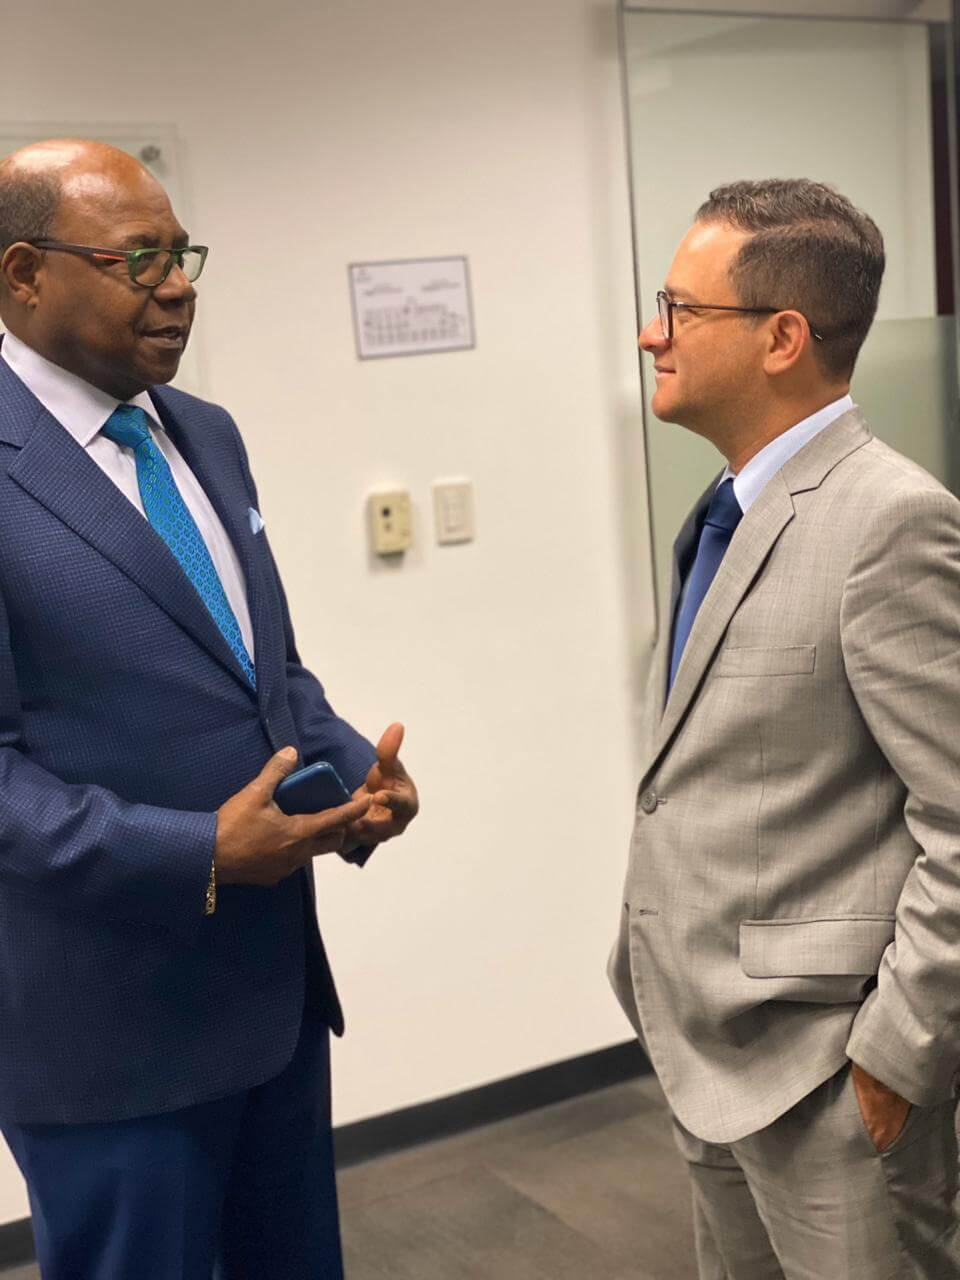 Jamaica and Peru Discuss Ways to Strengthen Bilateral Relations